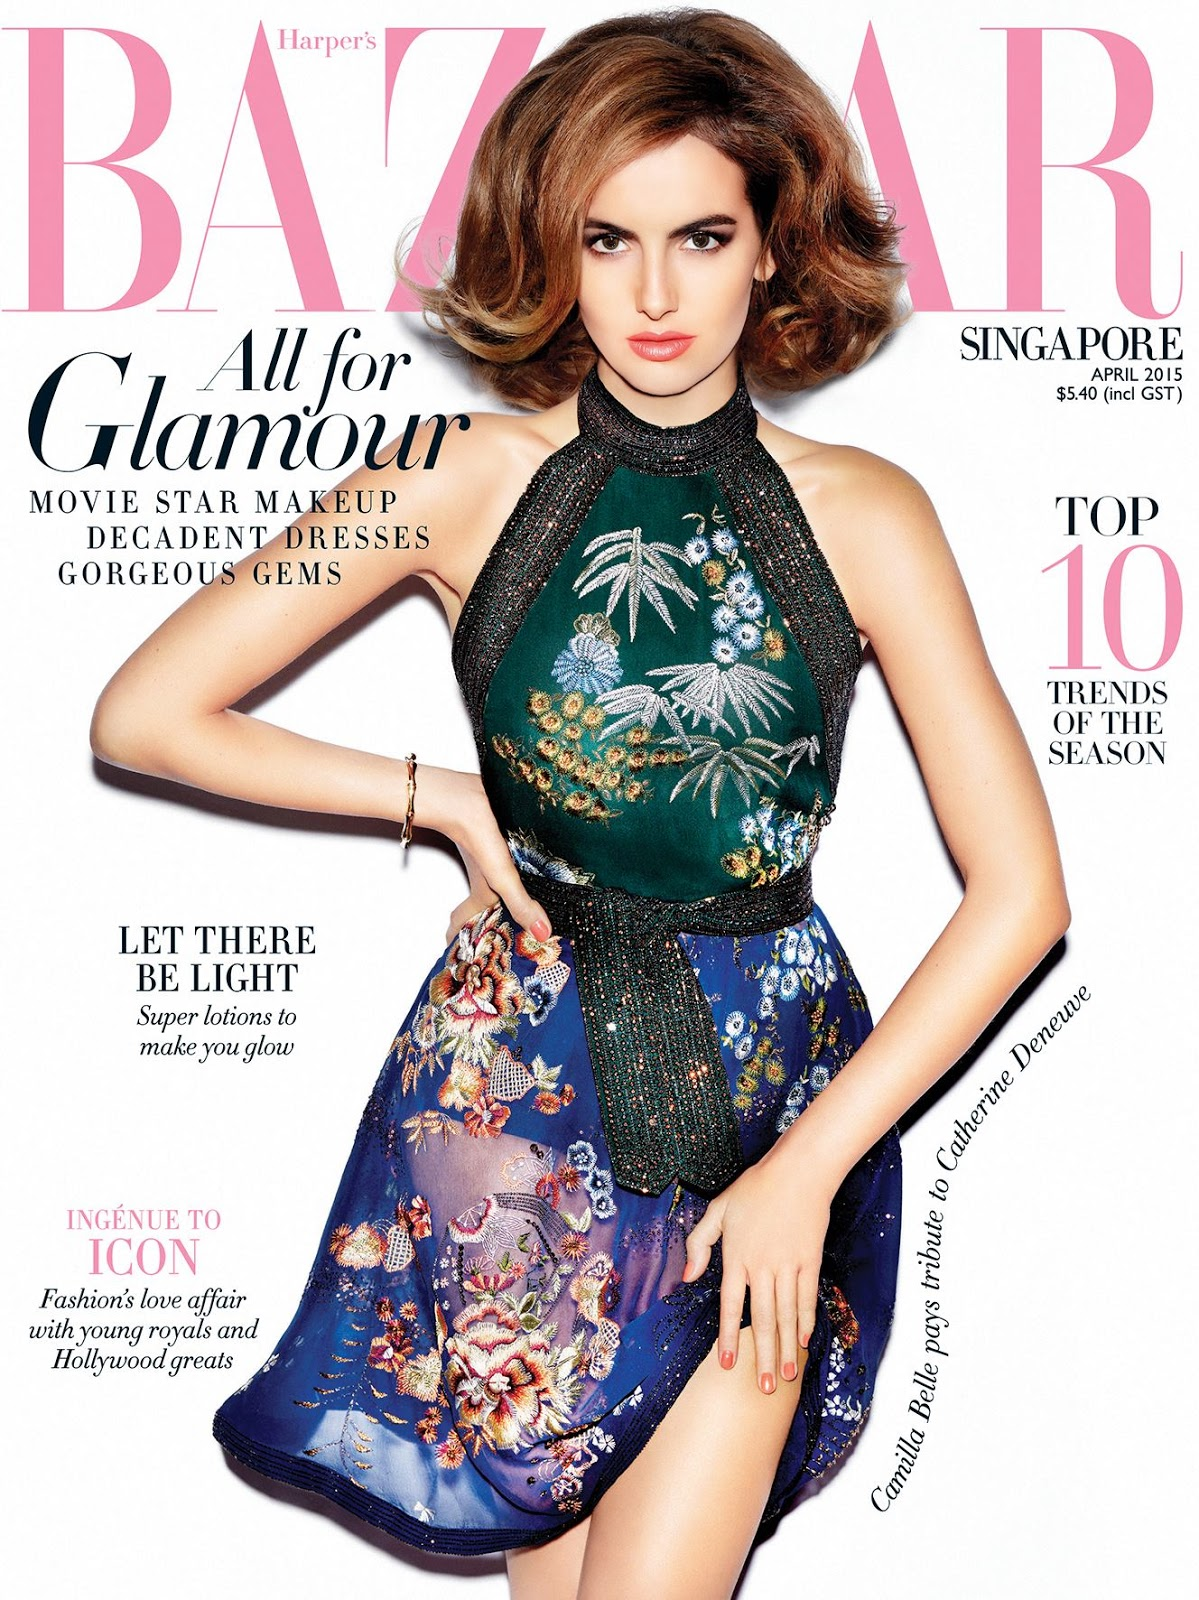 Actress @ Camilla Belle - Harper's Bazaar Singapore, April 2015